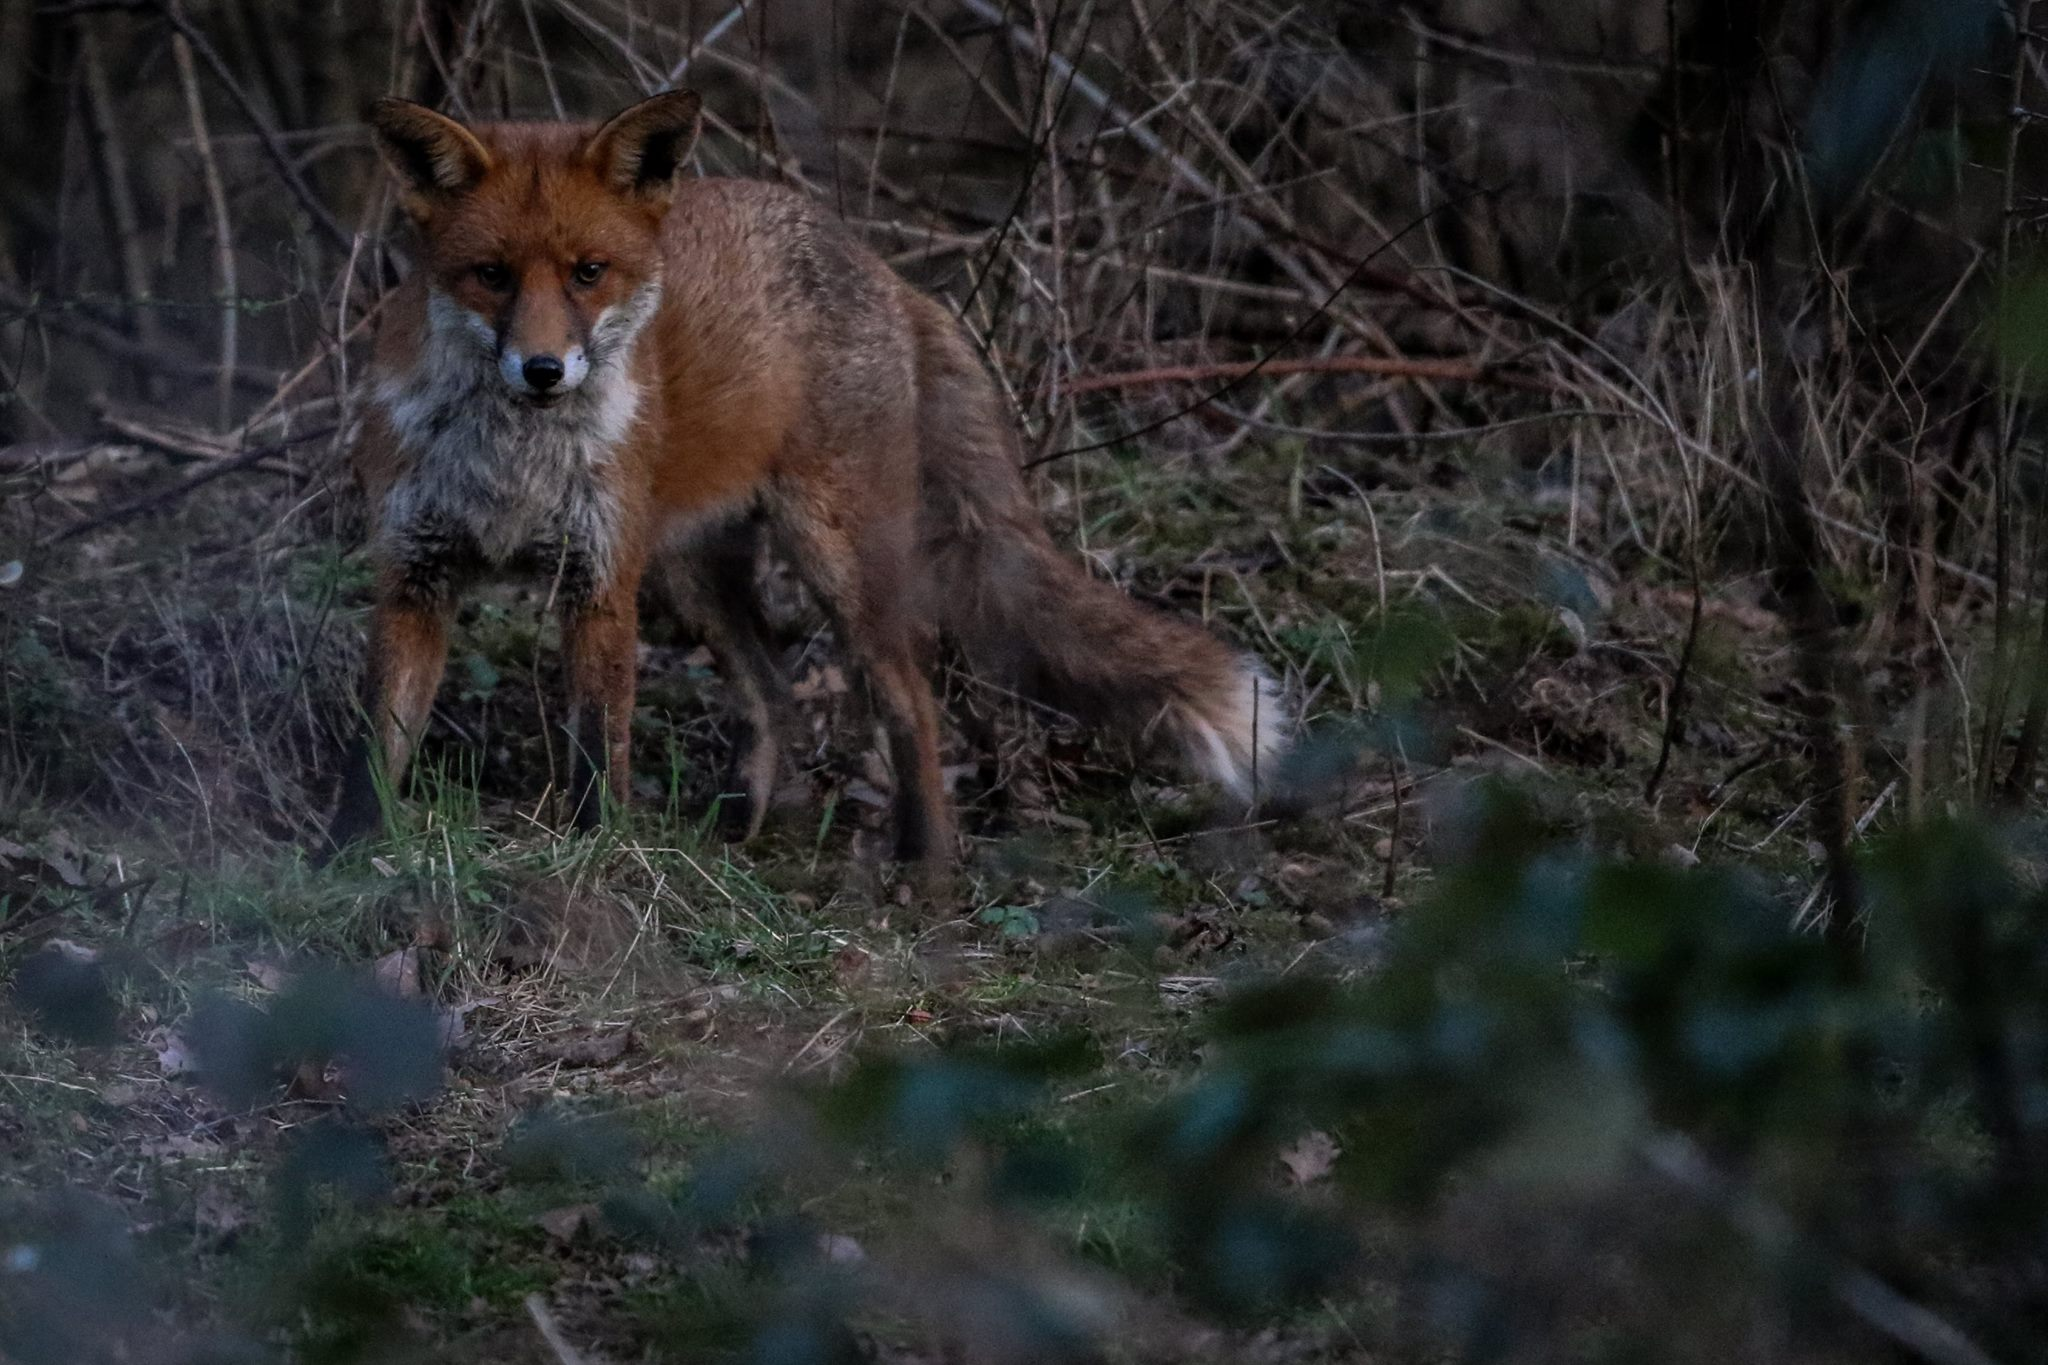 ... are confident enough to go off on their own and find their own food. Some will disperse and find their own territory, and some may stay in the area.